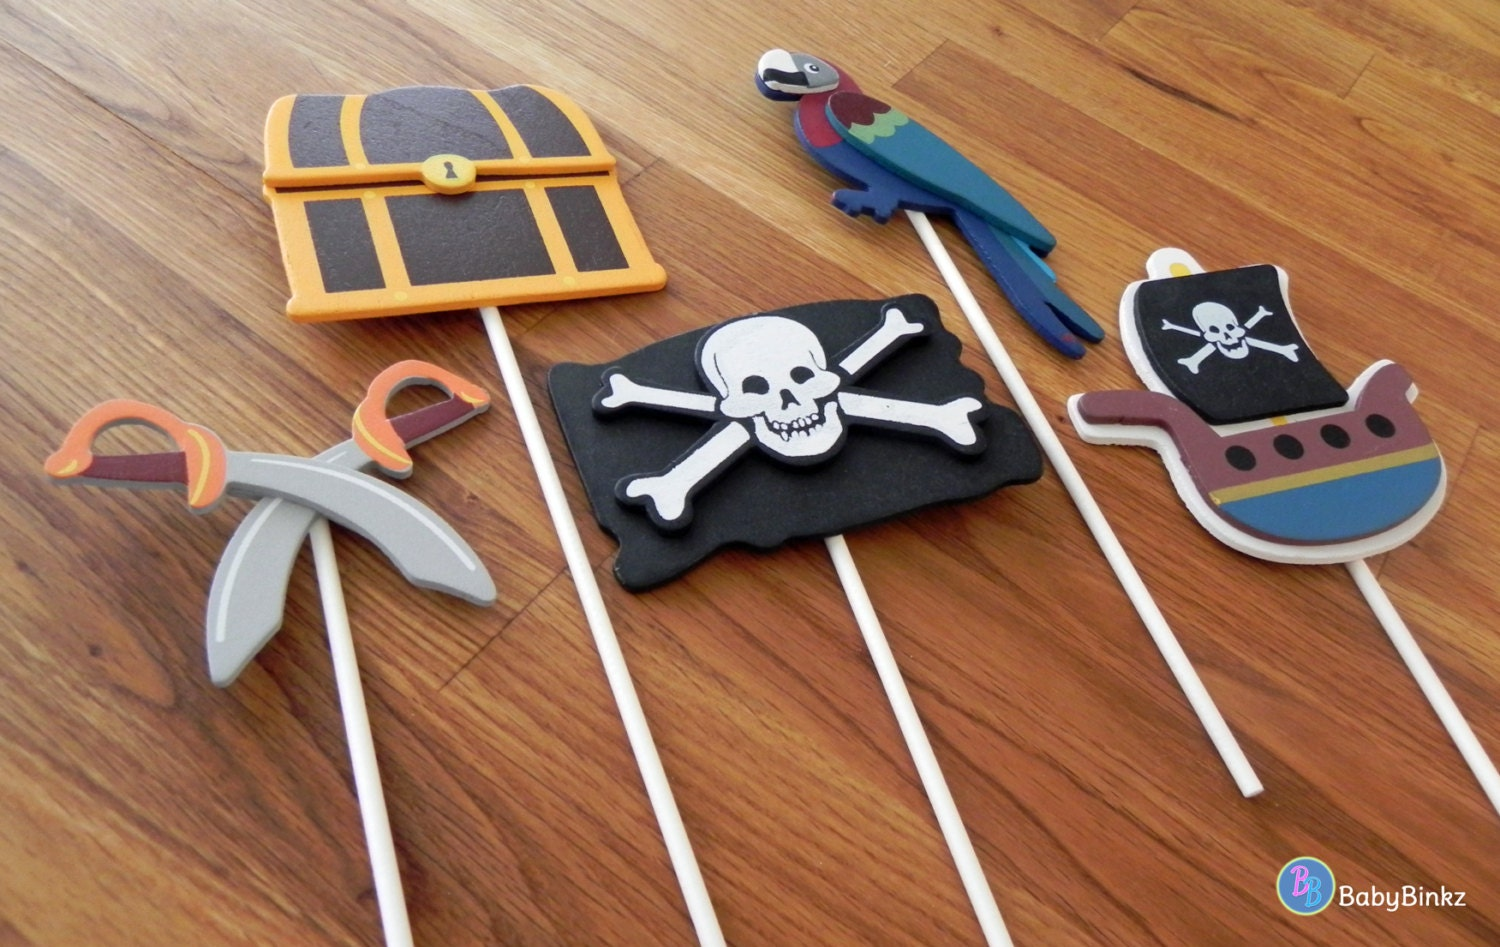 Treasure Chest Decorations Pirate Shapes Cake Toppers Or Party Decorations Pirate Ship